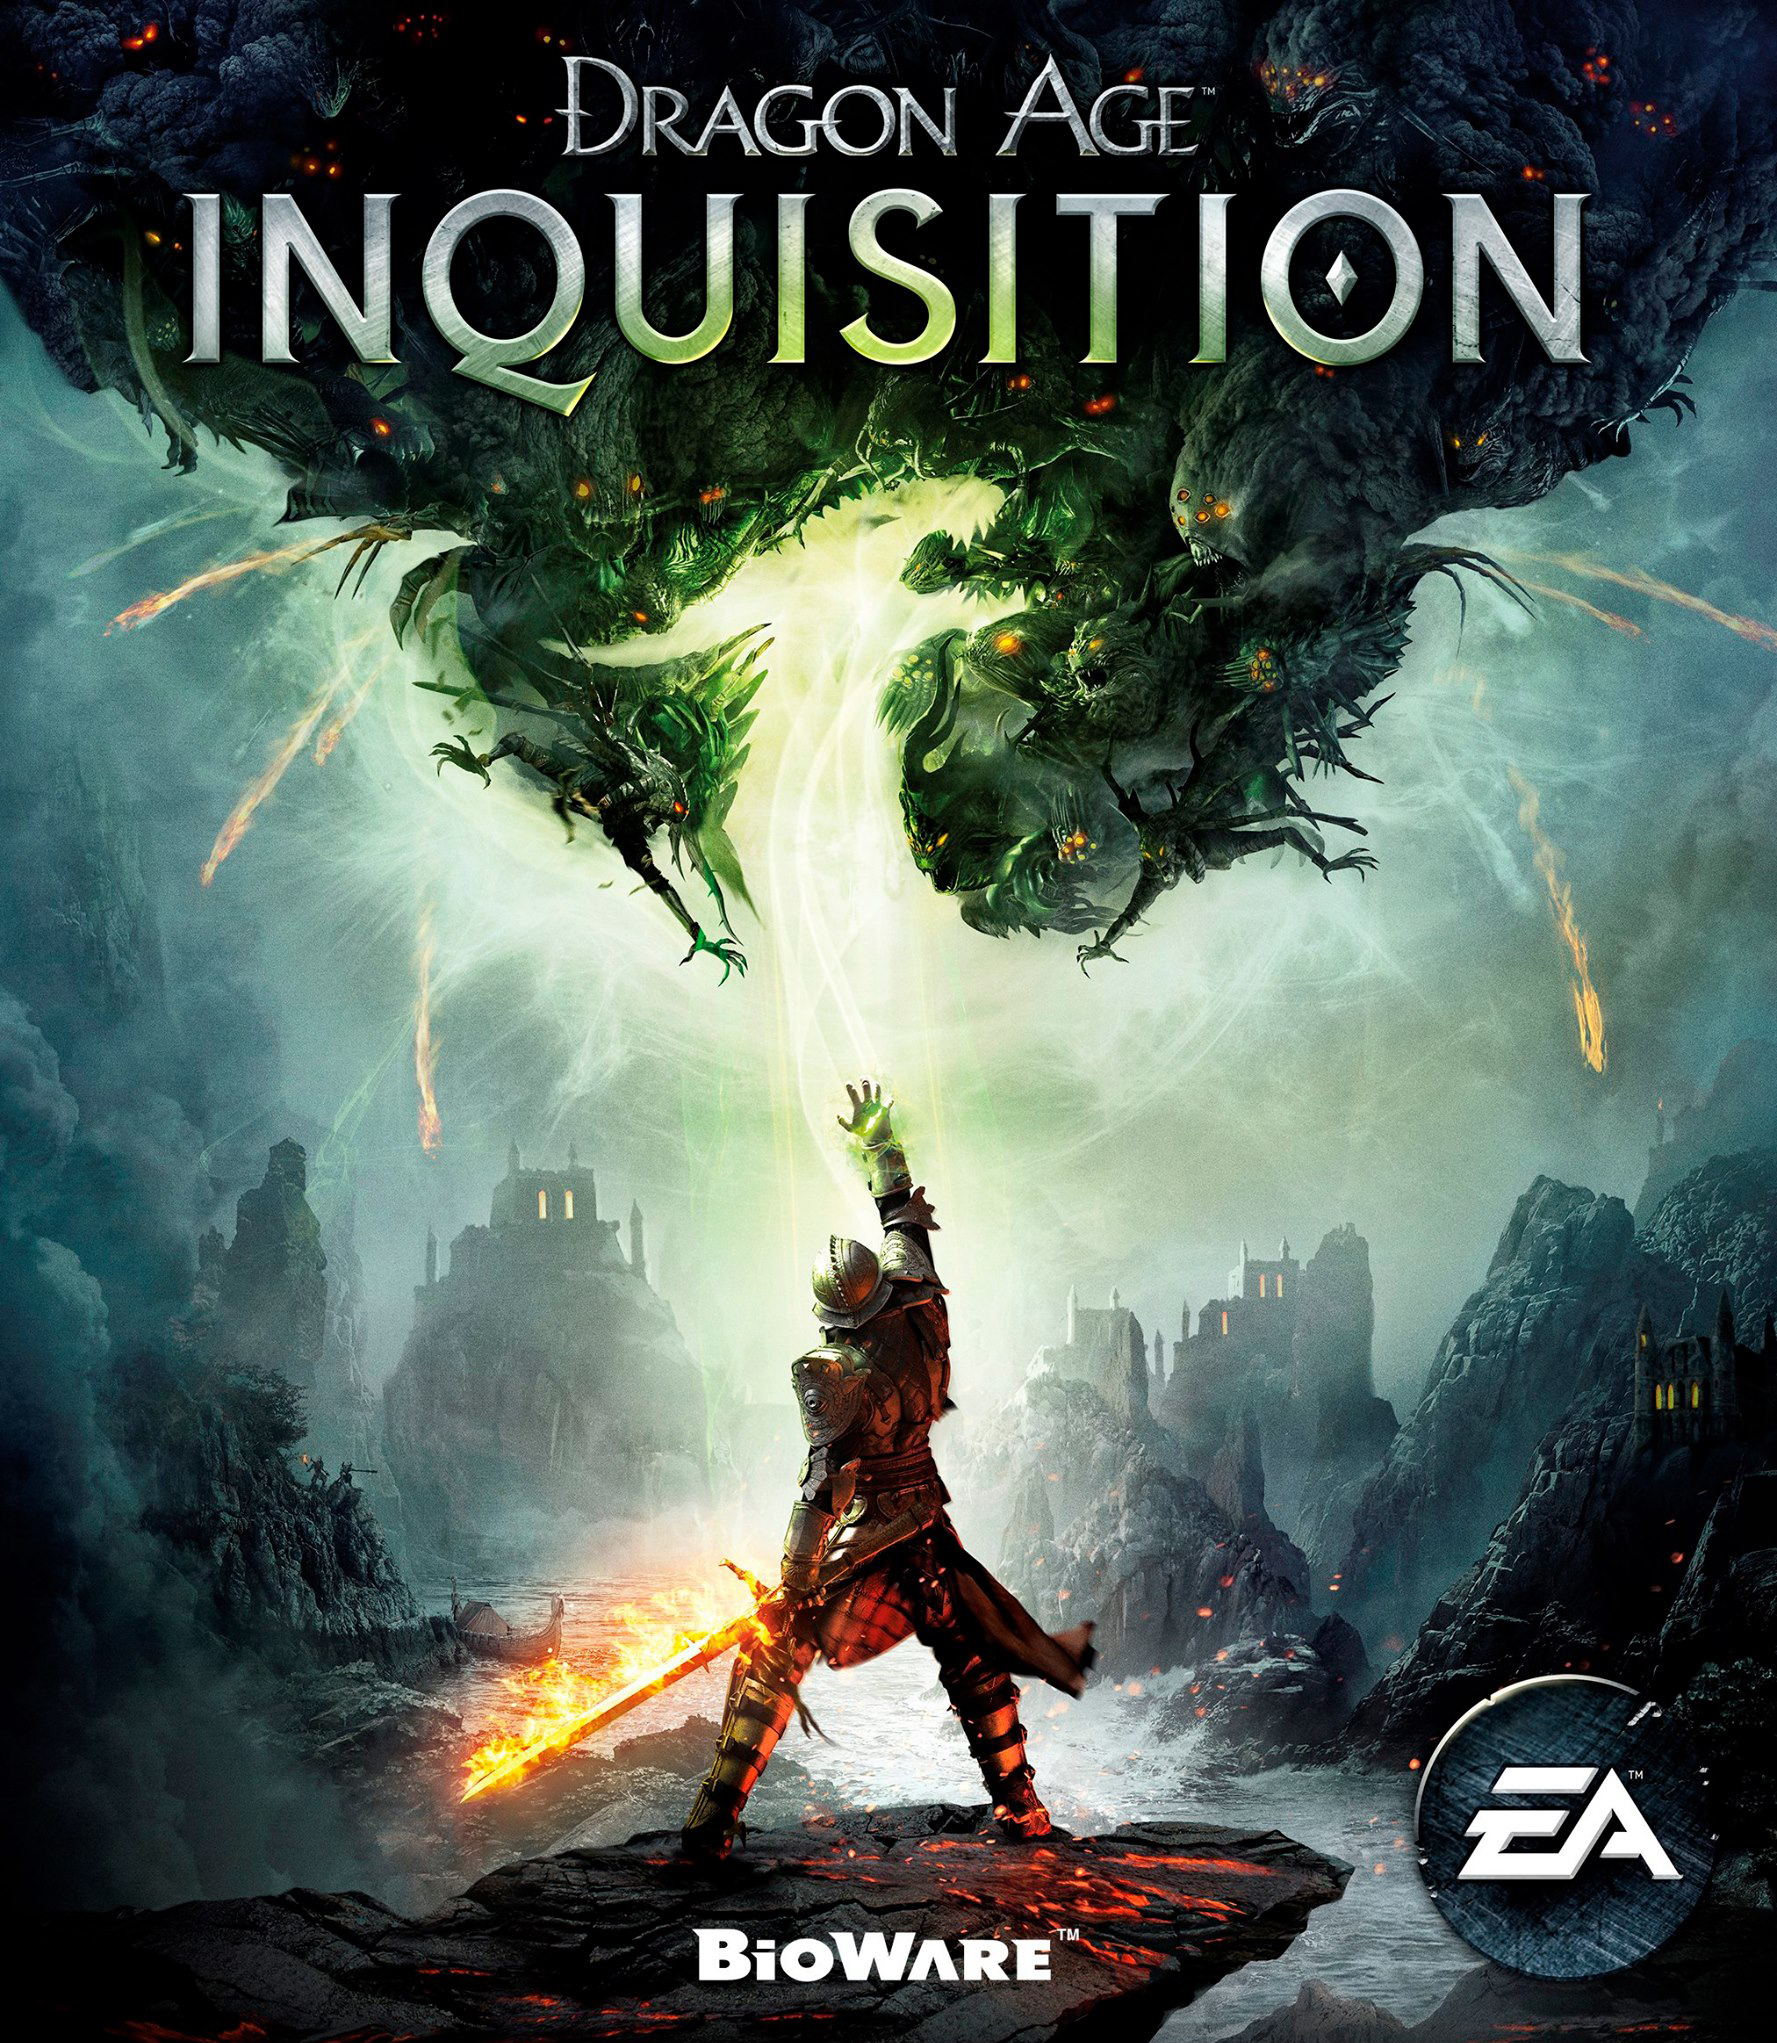 Dragon Age: Inquisition (XBOX ONE) Review